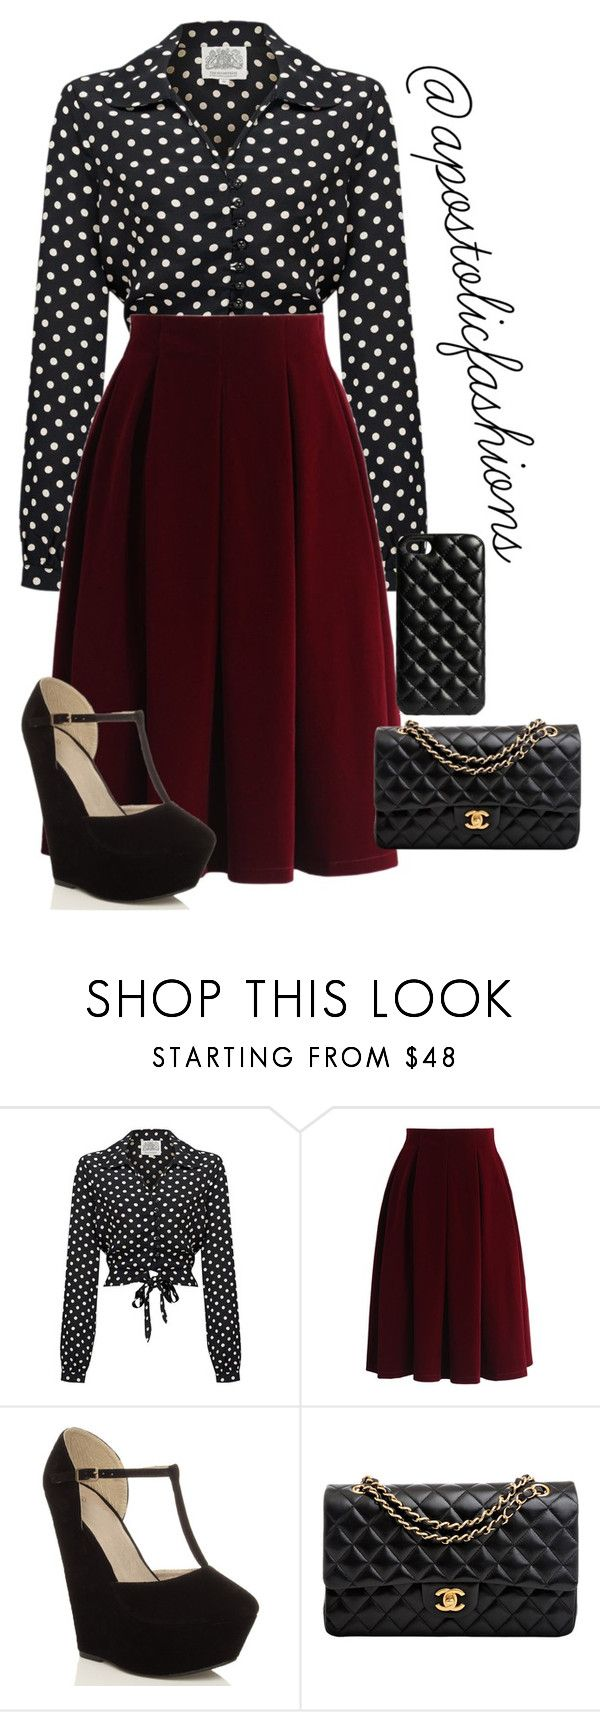 """""""Apostolic Fashions #1332"""" by apostolicfashions ❤ liked on Polyvore featuring Chicwish, Chanel, The Case Factory, modestlykay and modestlywhit"""